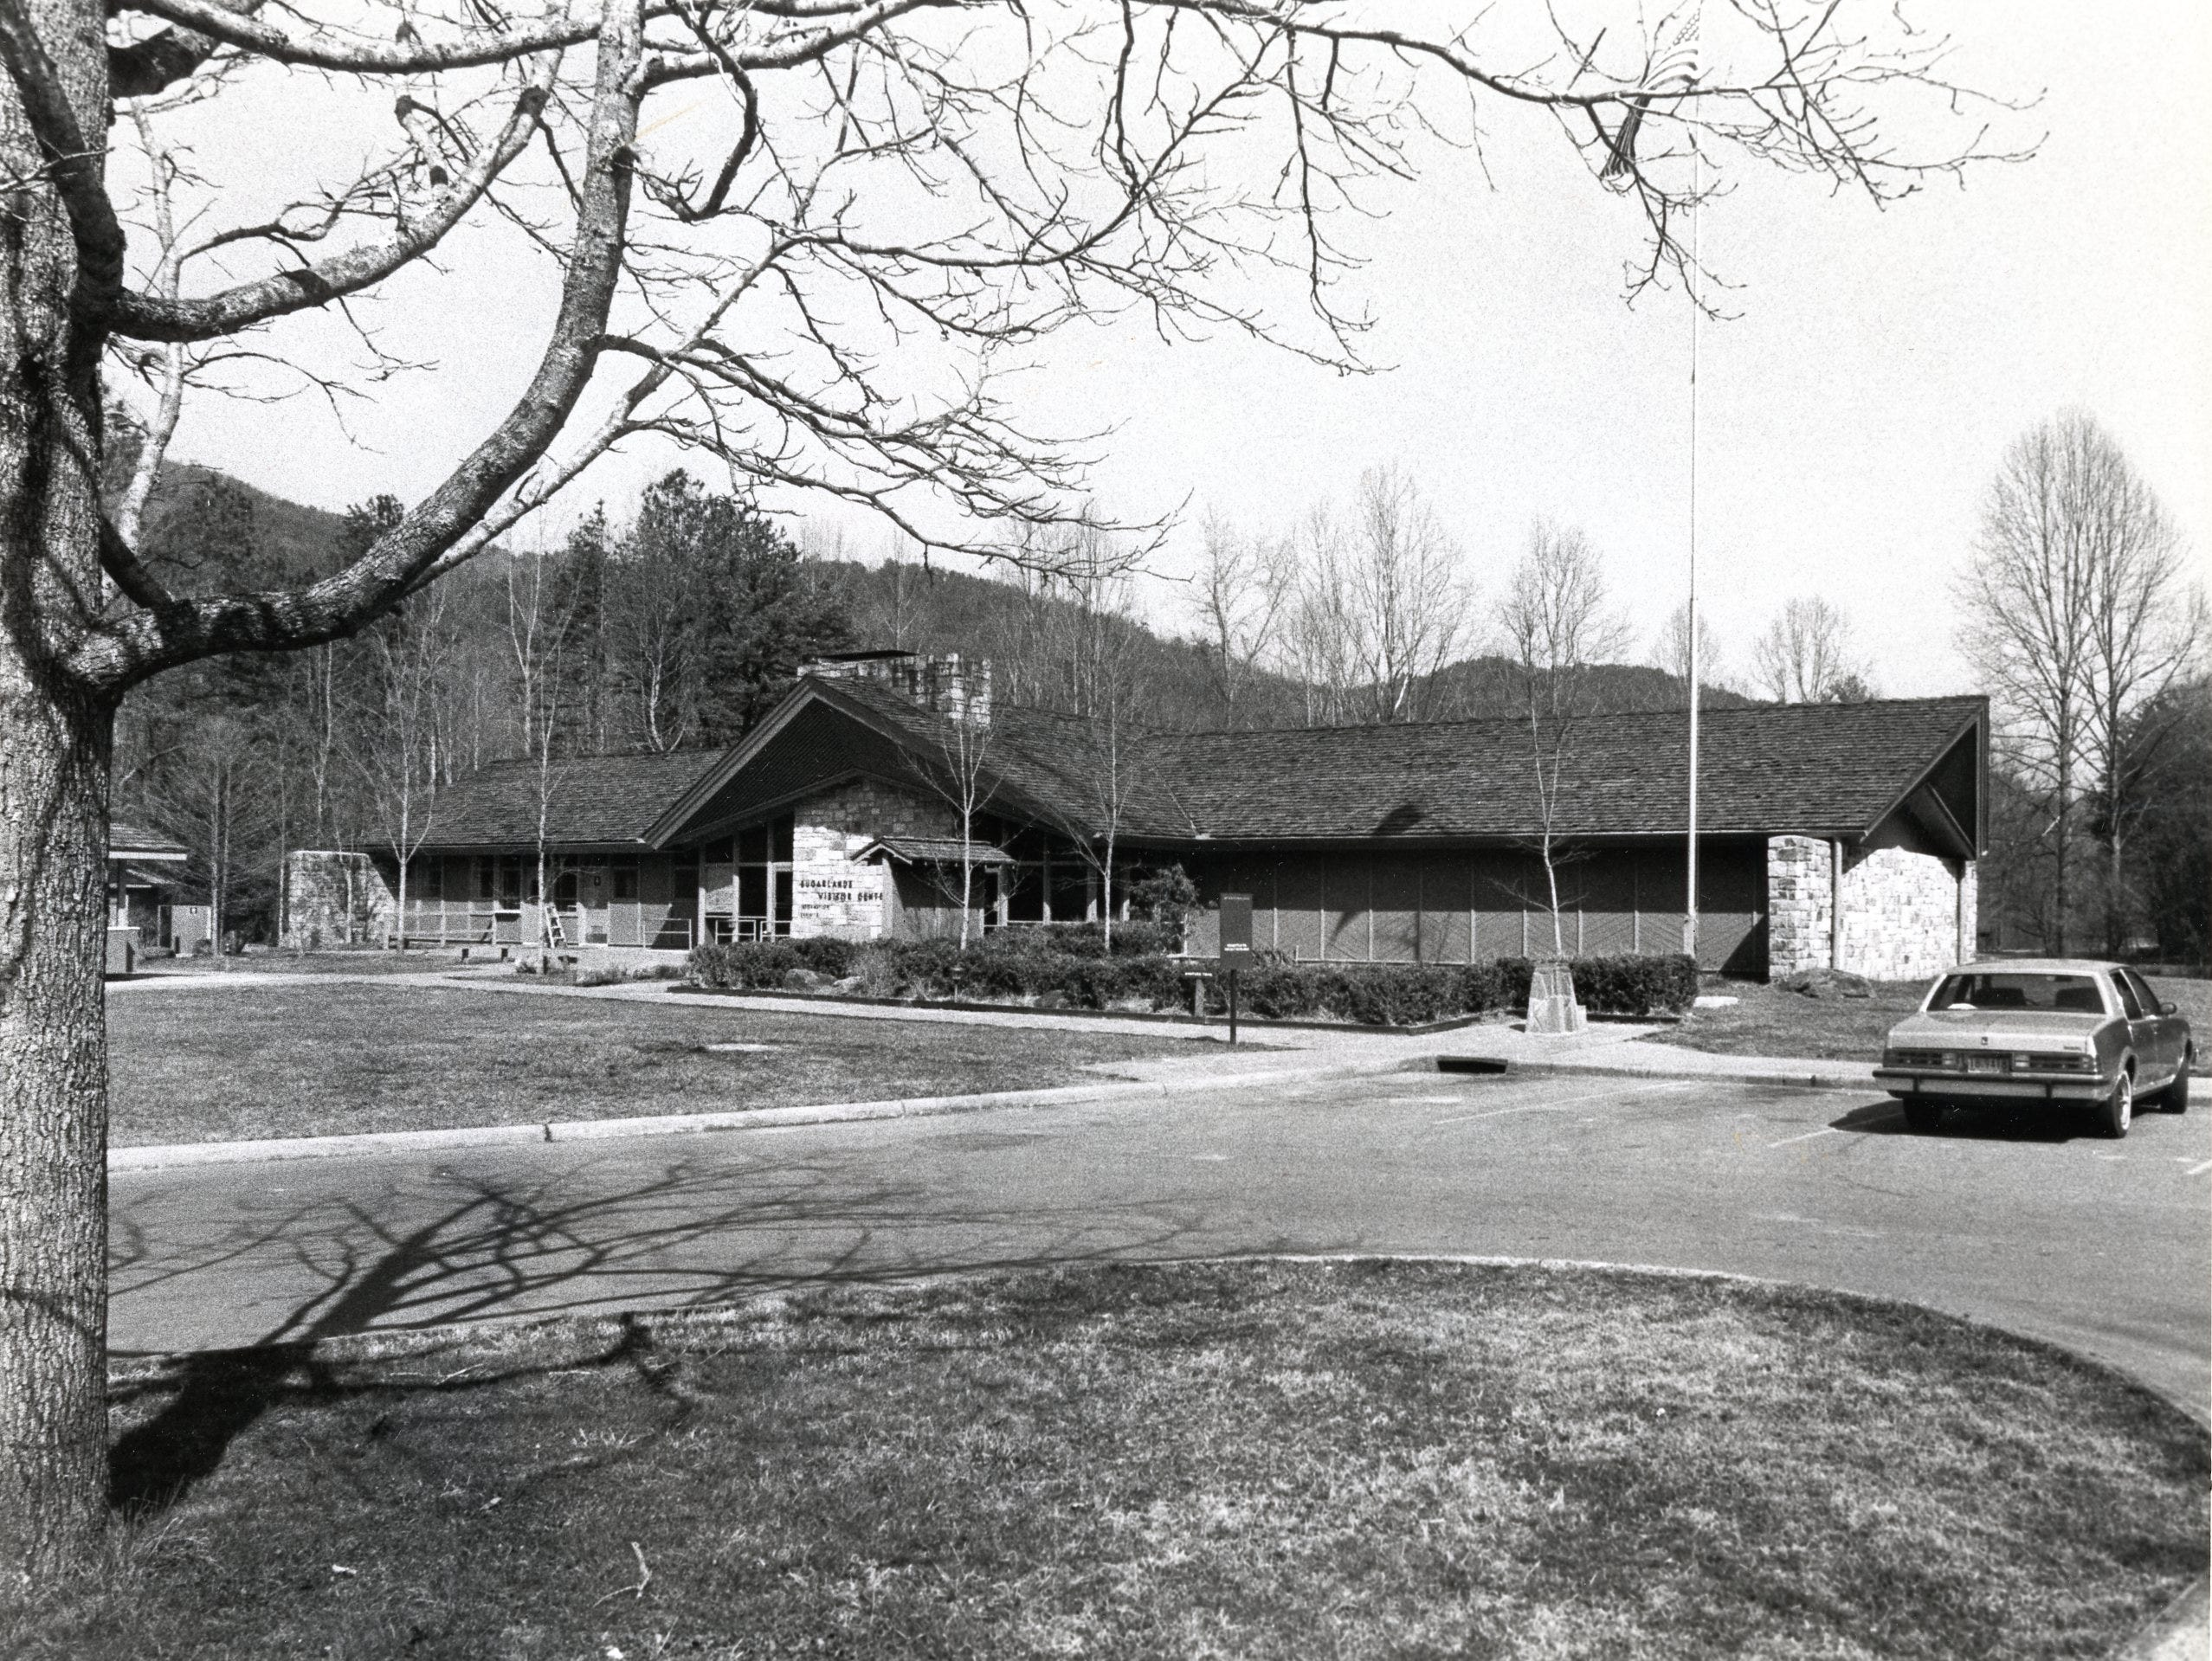 Sugarland Information Center in the Great Smokey Mountains National Park, March, 1983